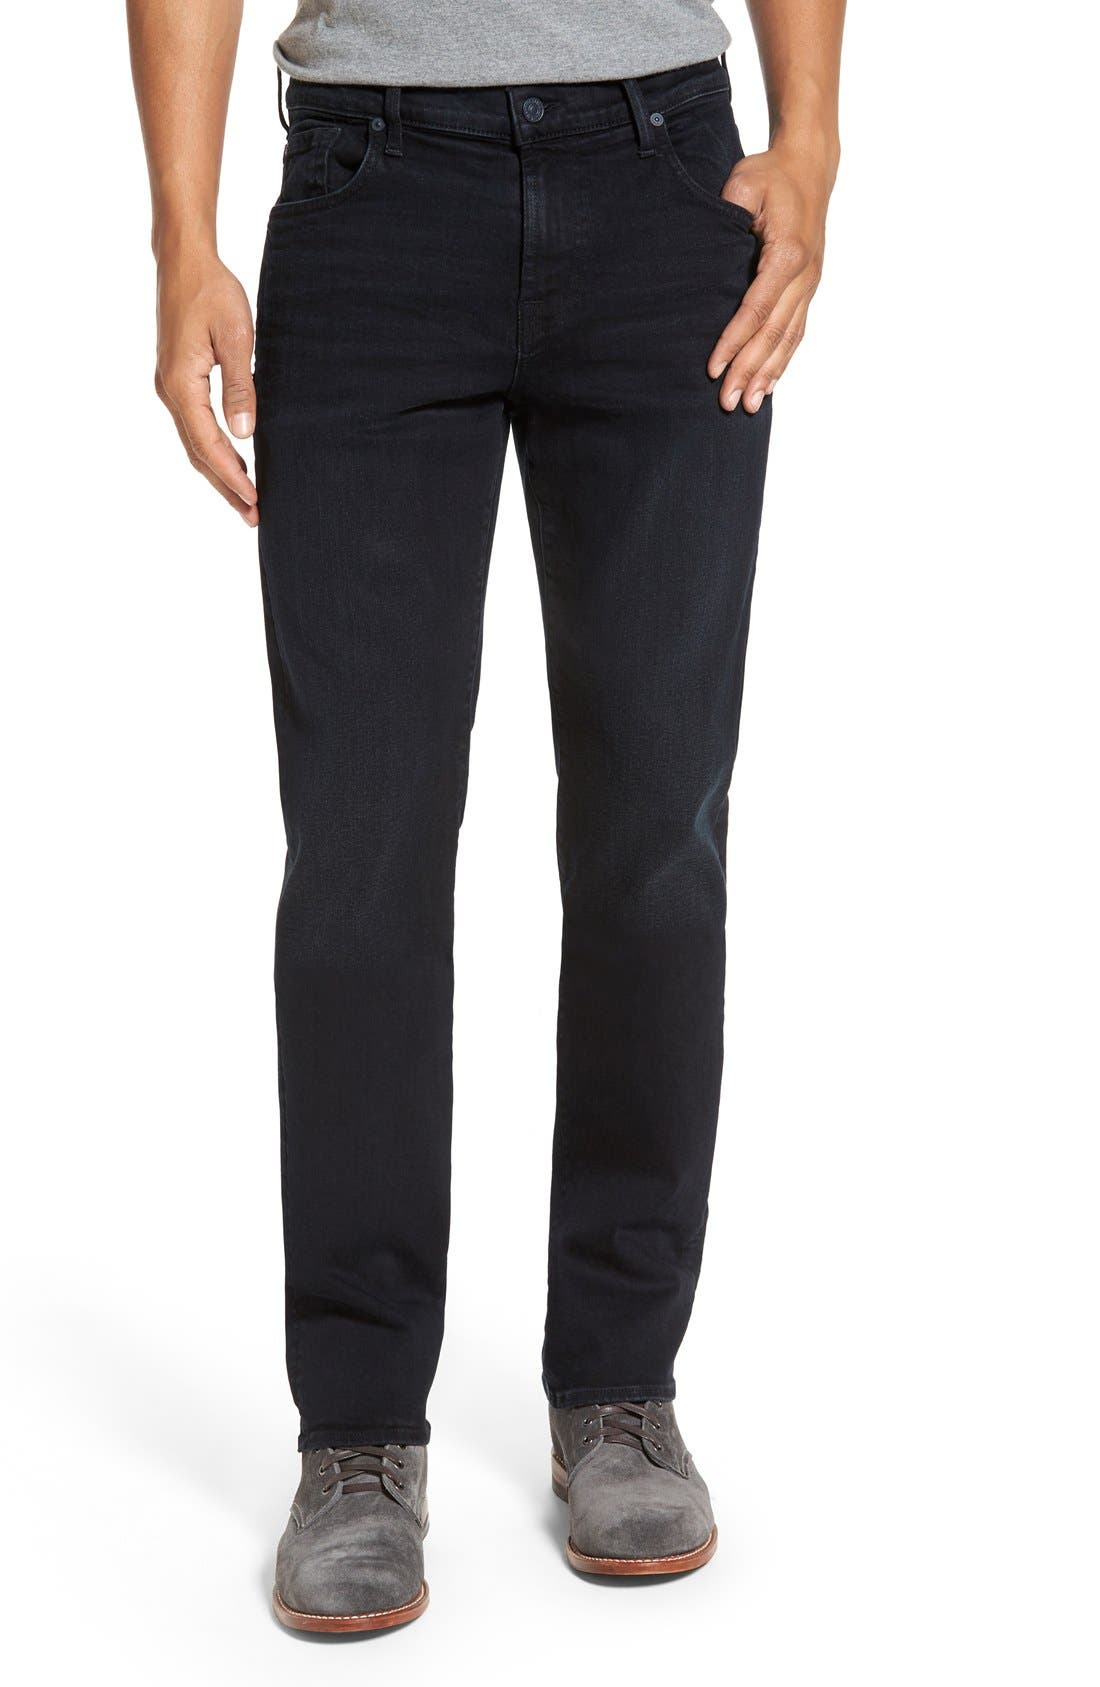 Alternate Image 1 Selected - 7 For All Mankind® 'Standard - Luxe Performance' Straight Leg Jeans (Stockholme)